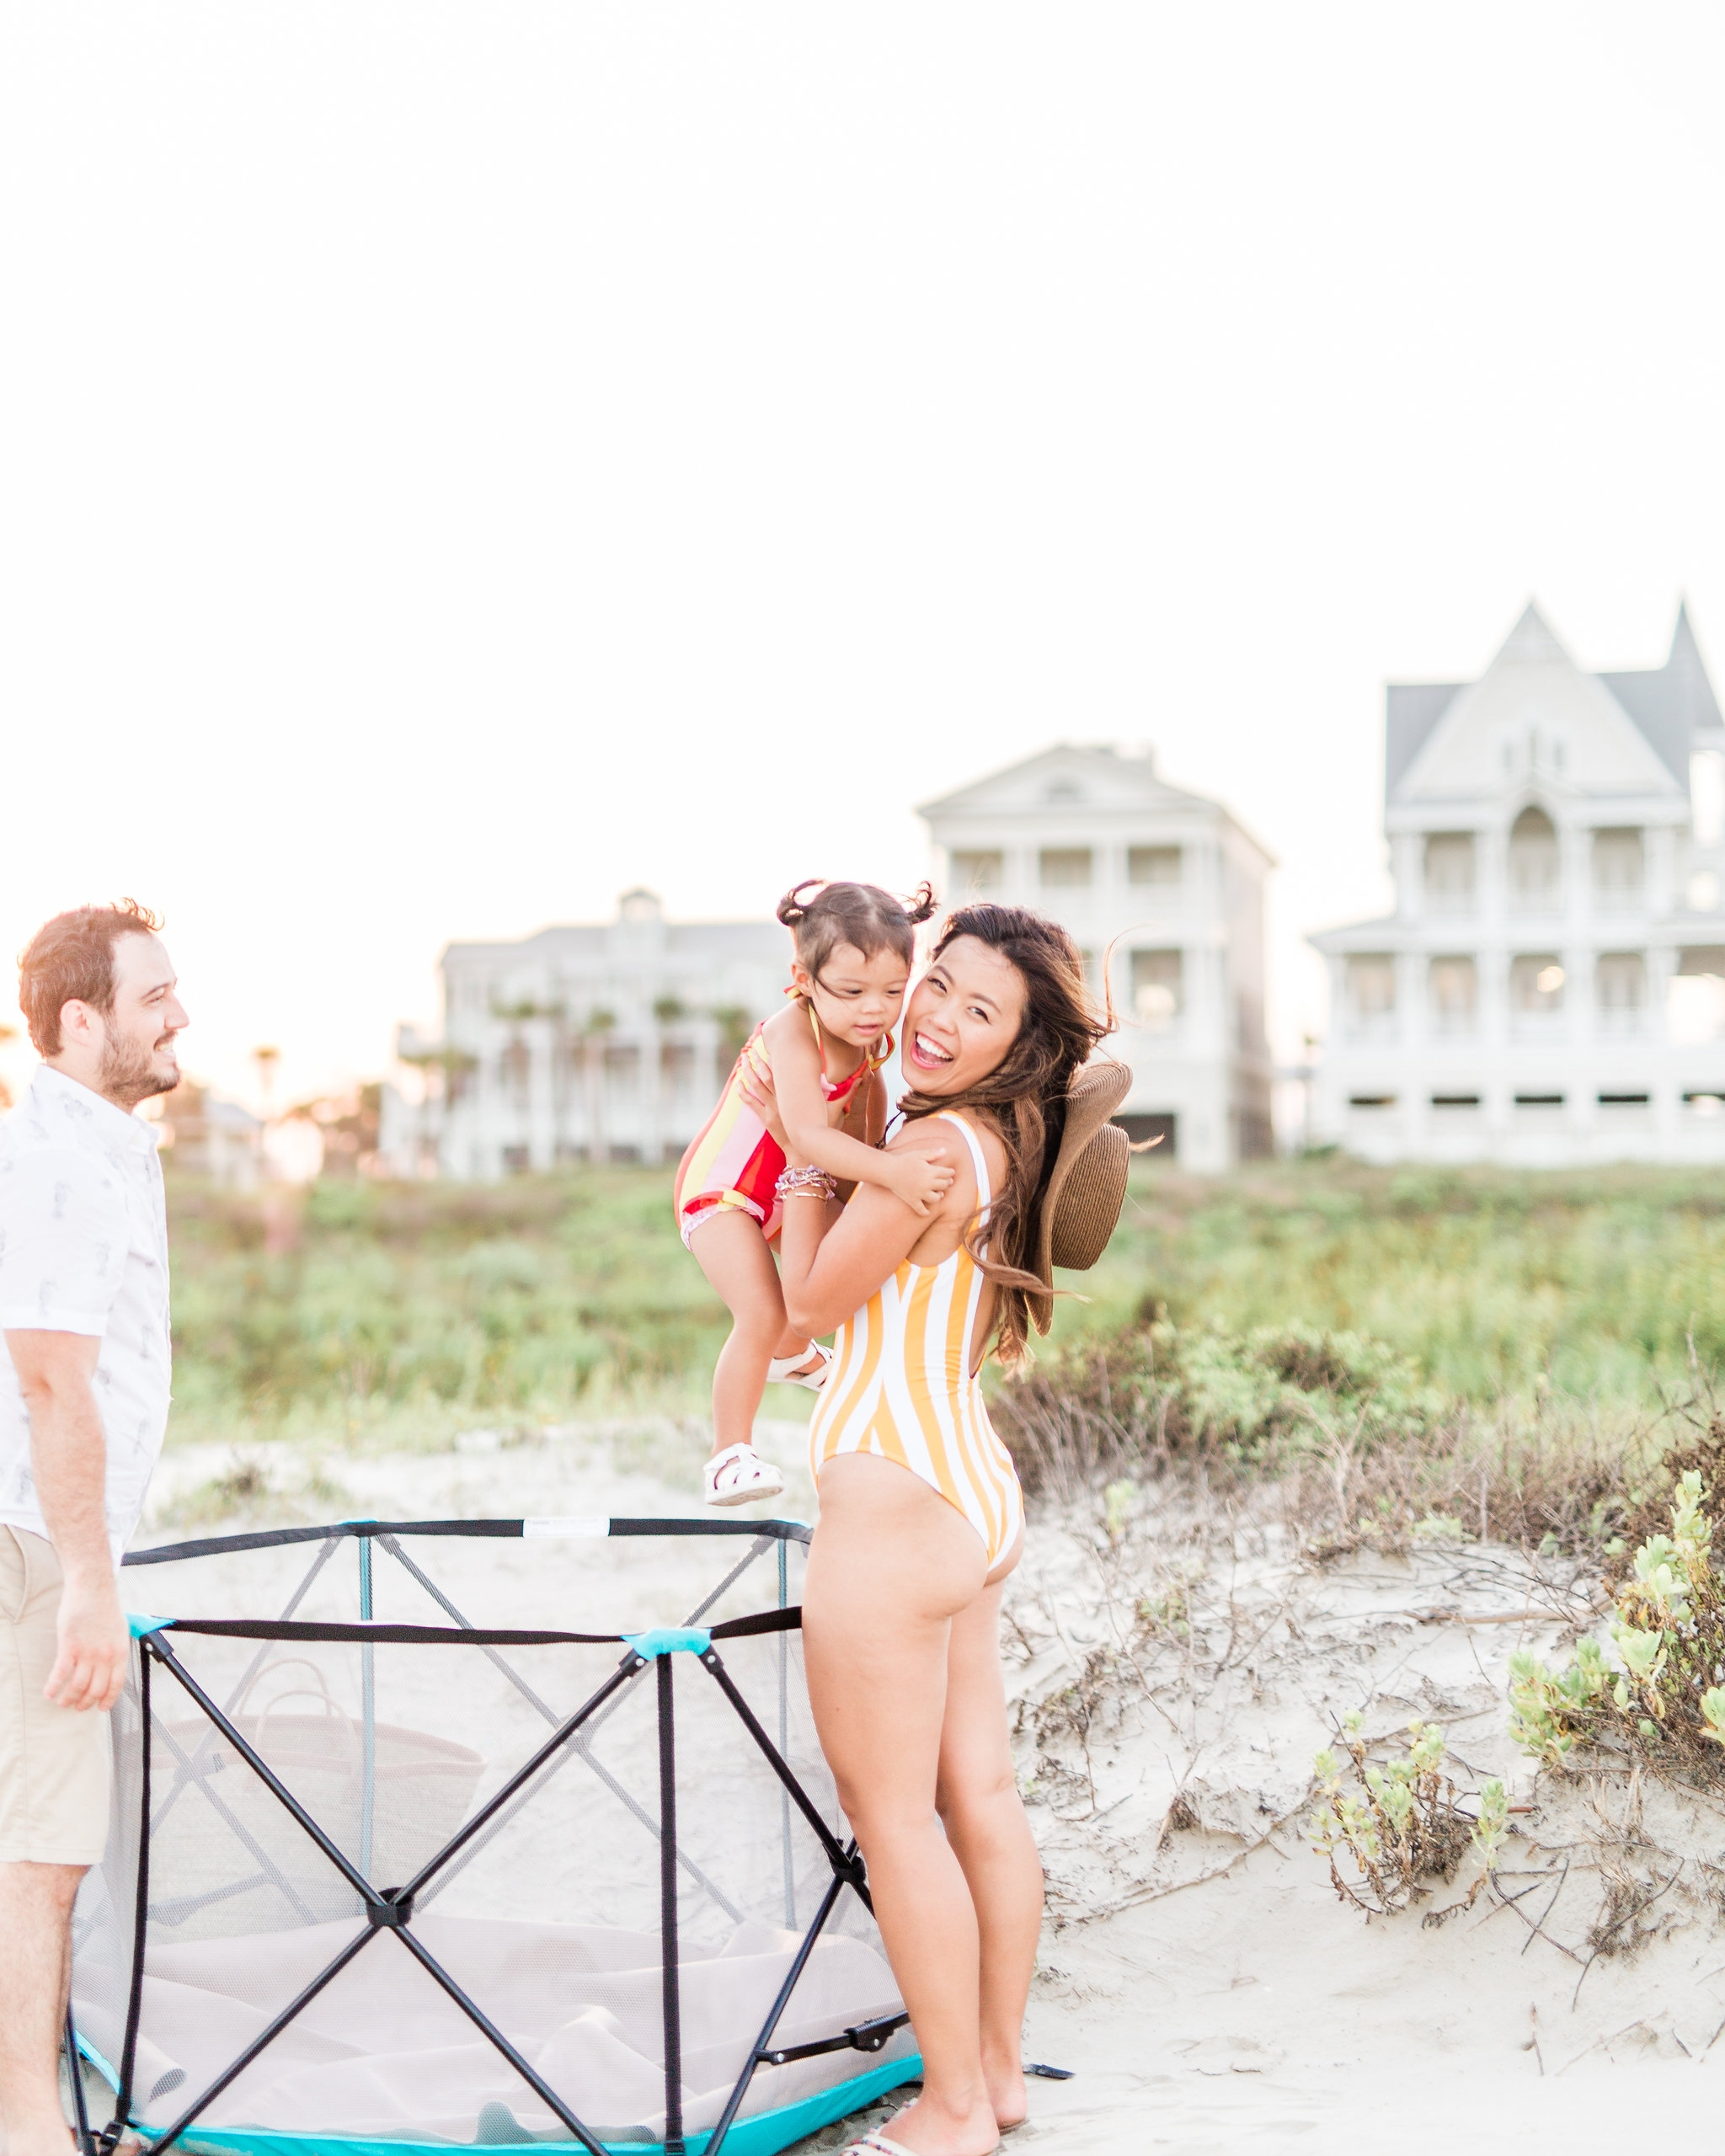 Regalo Baby My Play Review Galveston Traveling Tips with Kids Family Vacation